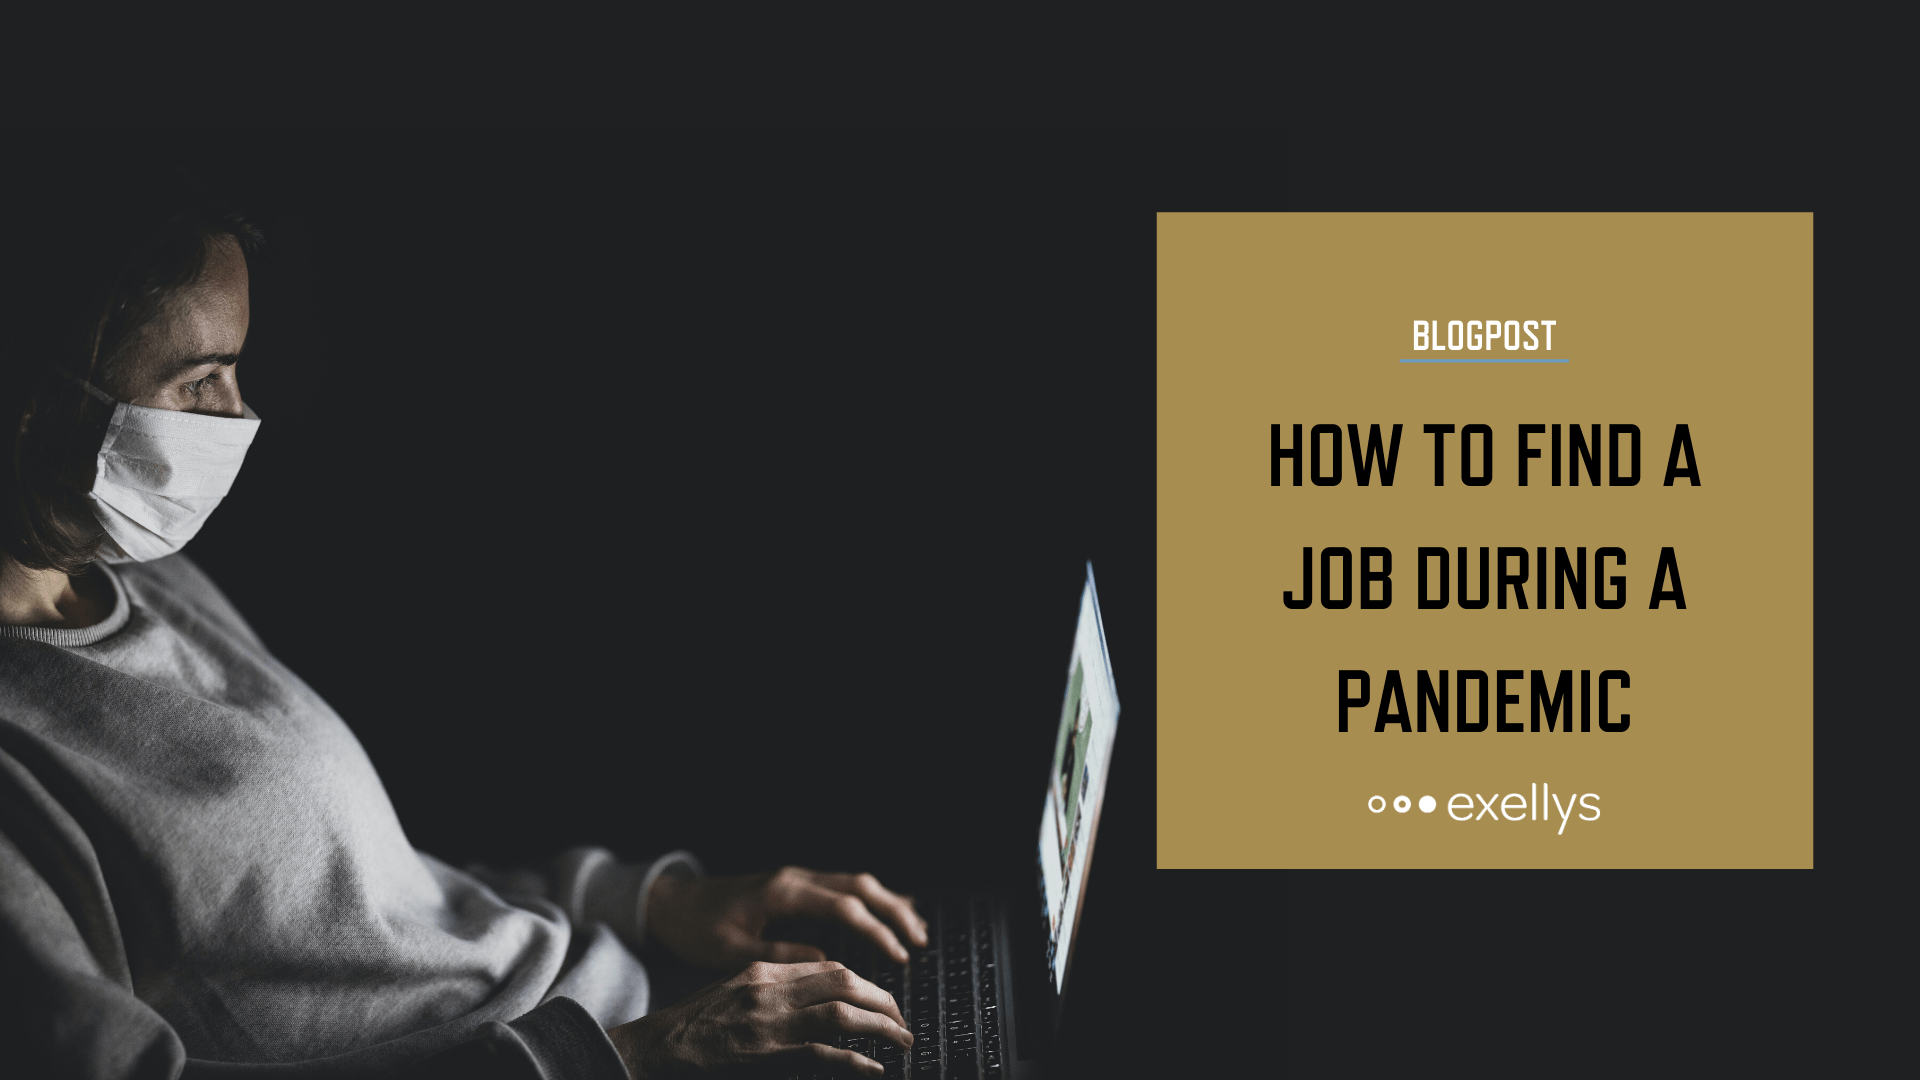 How to find a job during a pandemic